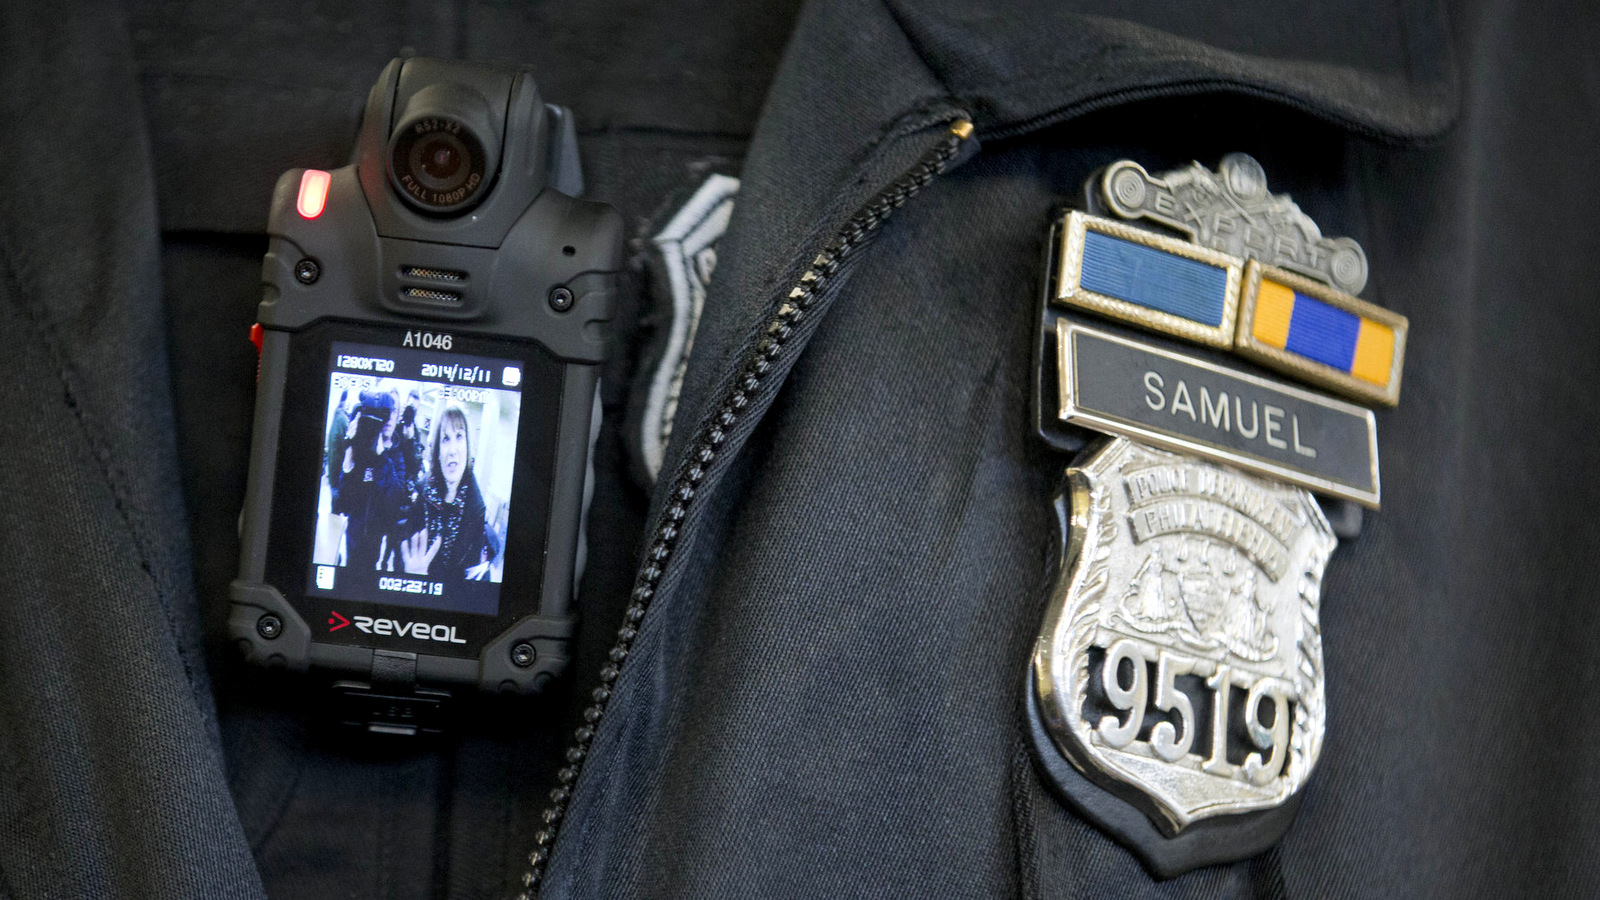 A Philadelphia police officer demonstrates a body-worn camera used as part of a pilot project in Philadelphia.  (AP/Matt Rourke)